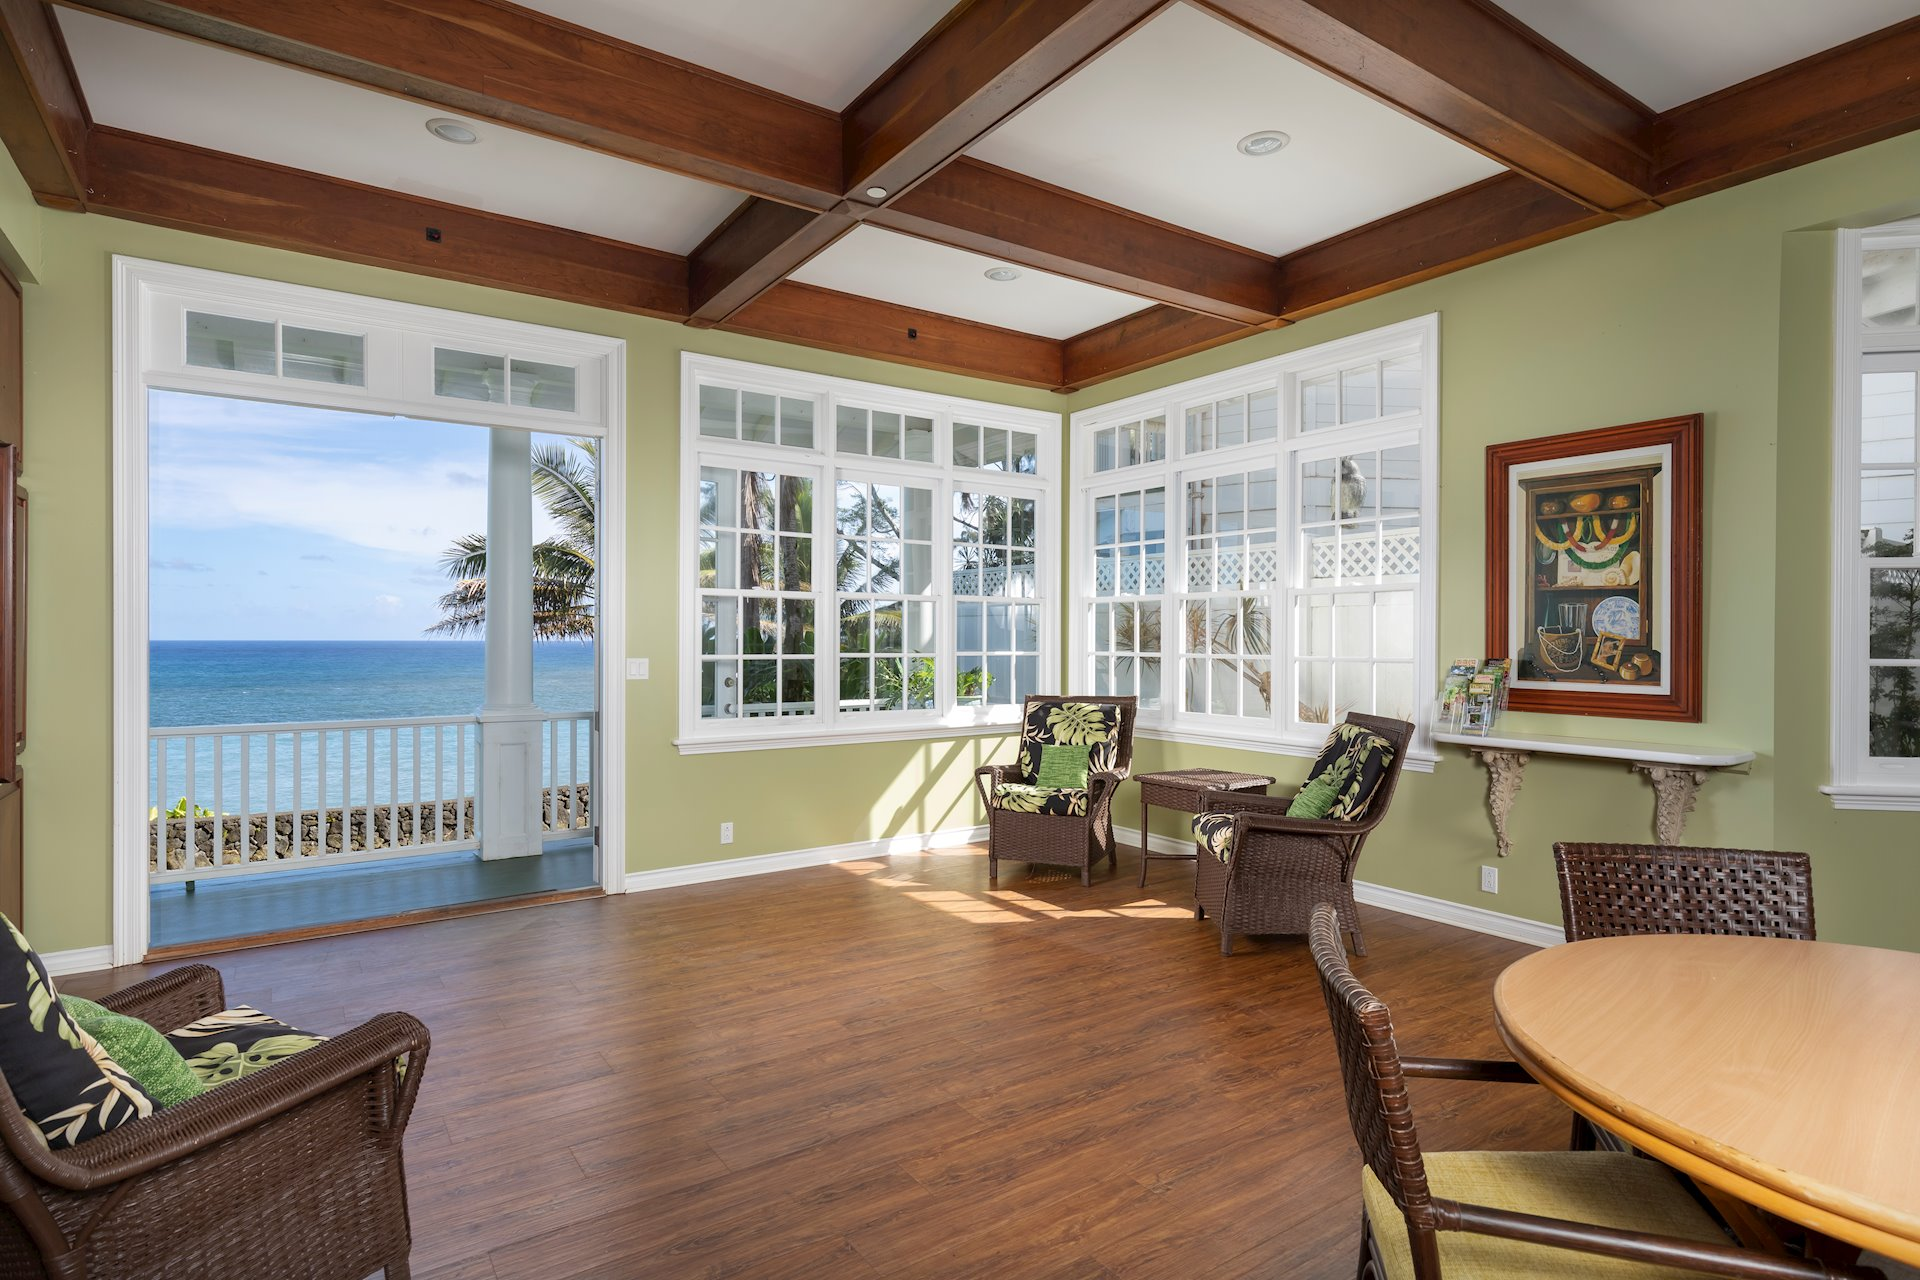 Formal oceanfront dining room with lanai.